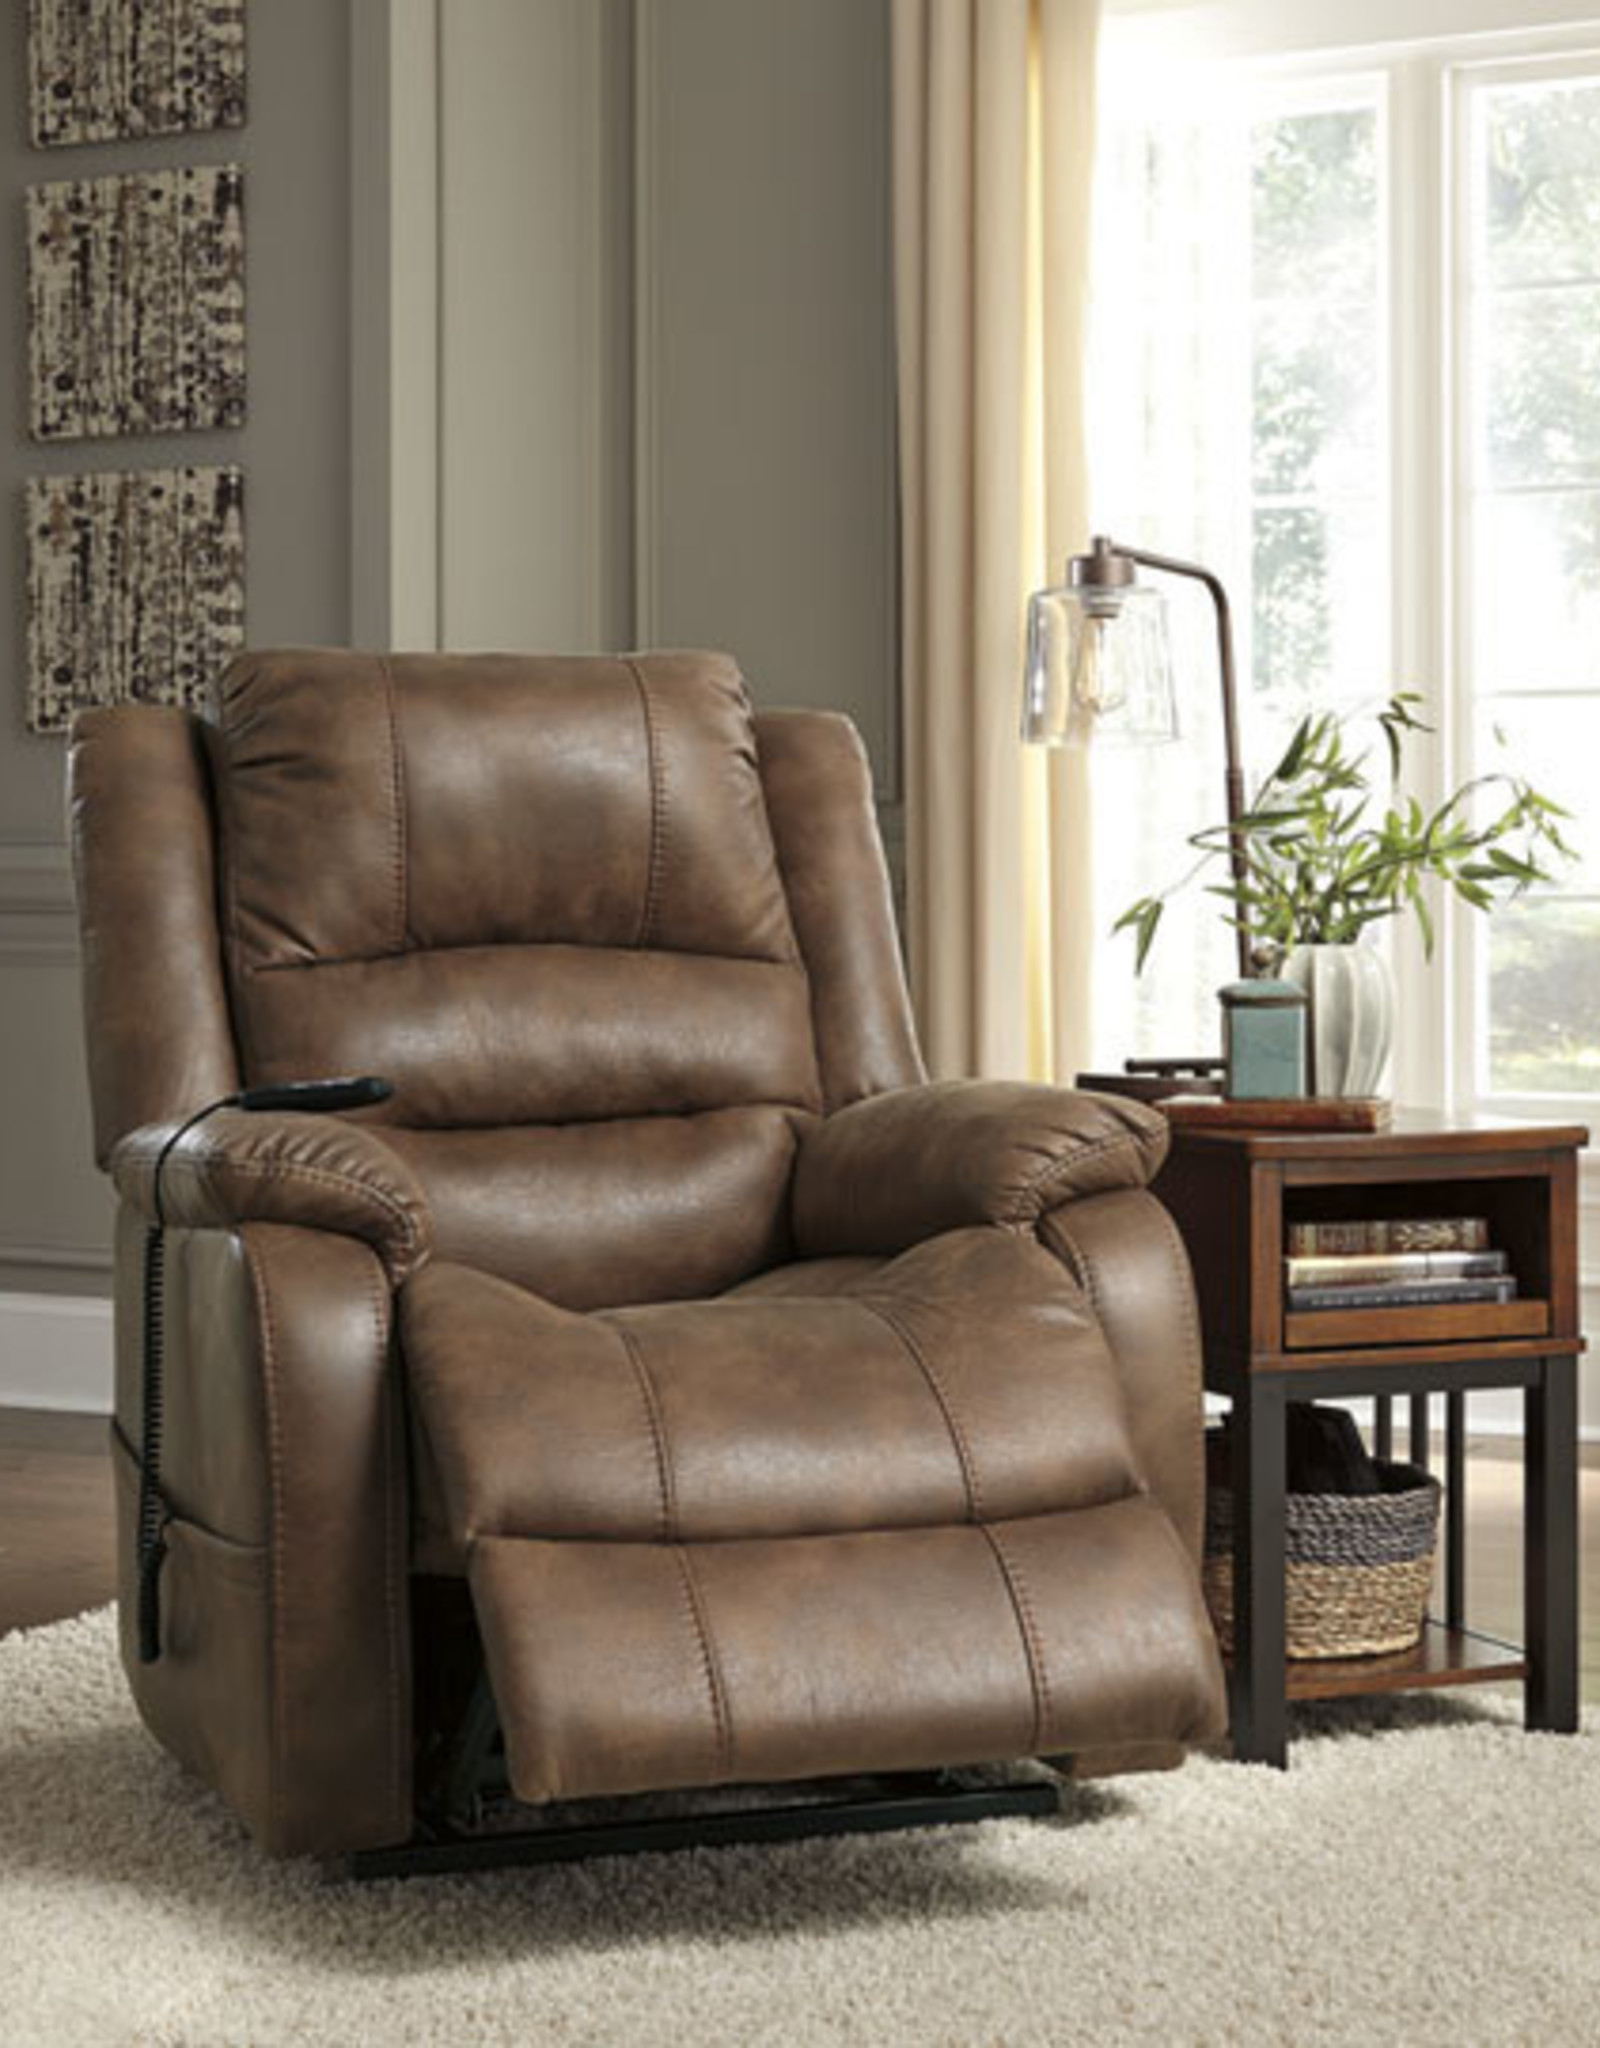 Yandel Power Lift Recliner (Saddle) - Online Only